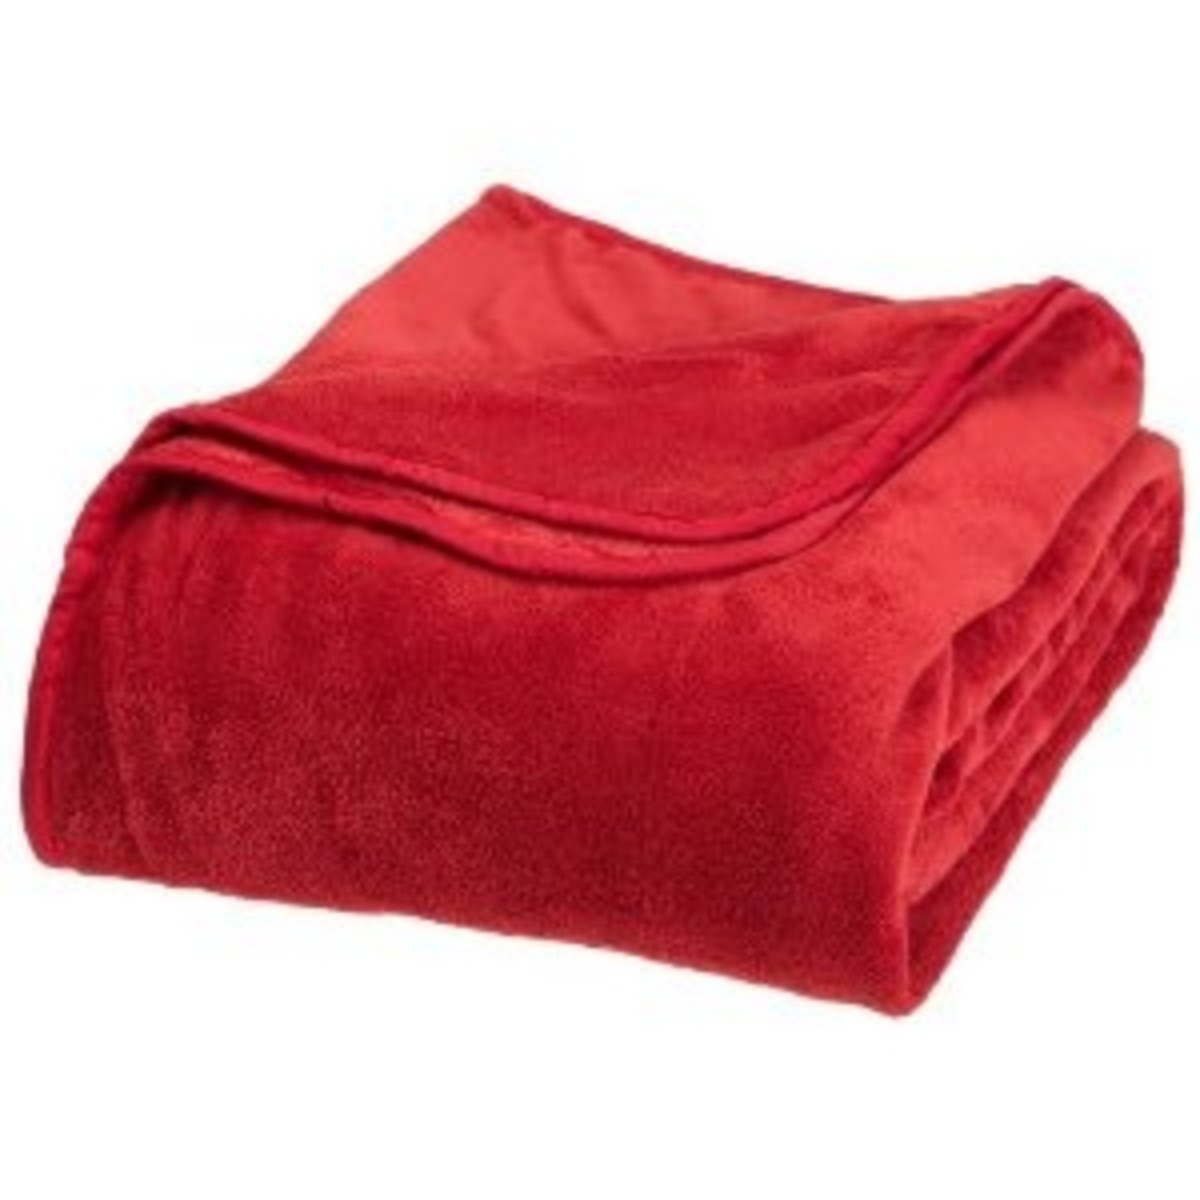 Fleece Blankets - Warm Cosy Fleece Throw Blankets At Cheap Discount Prices